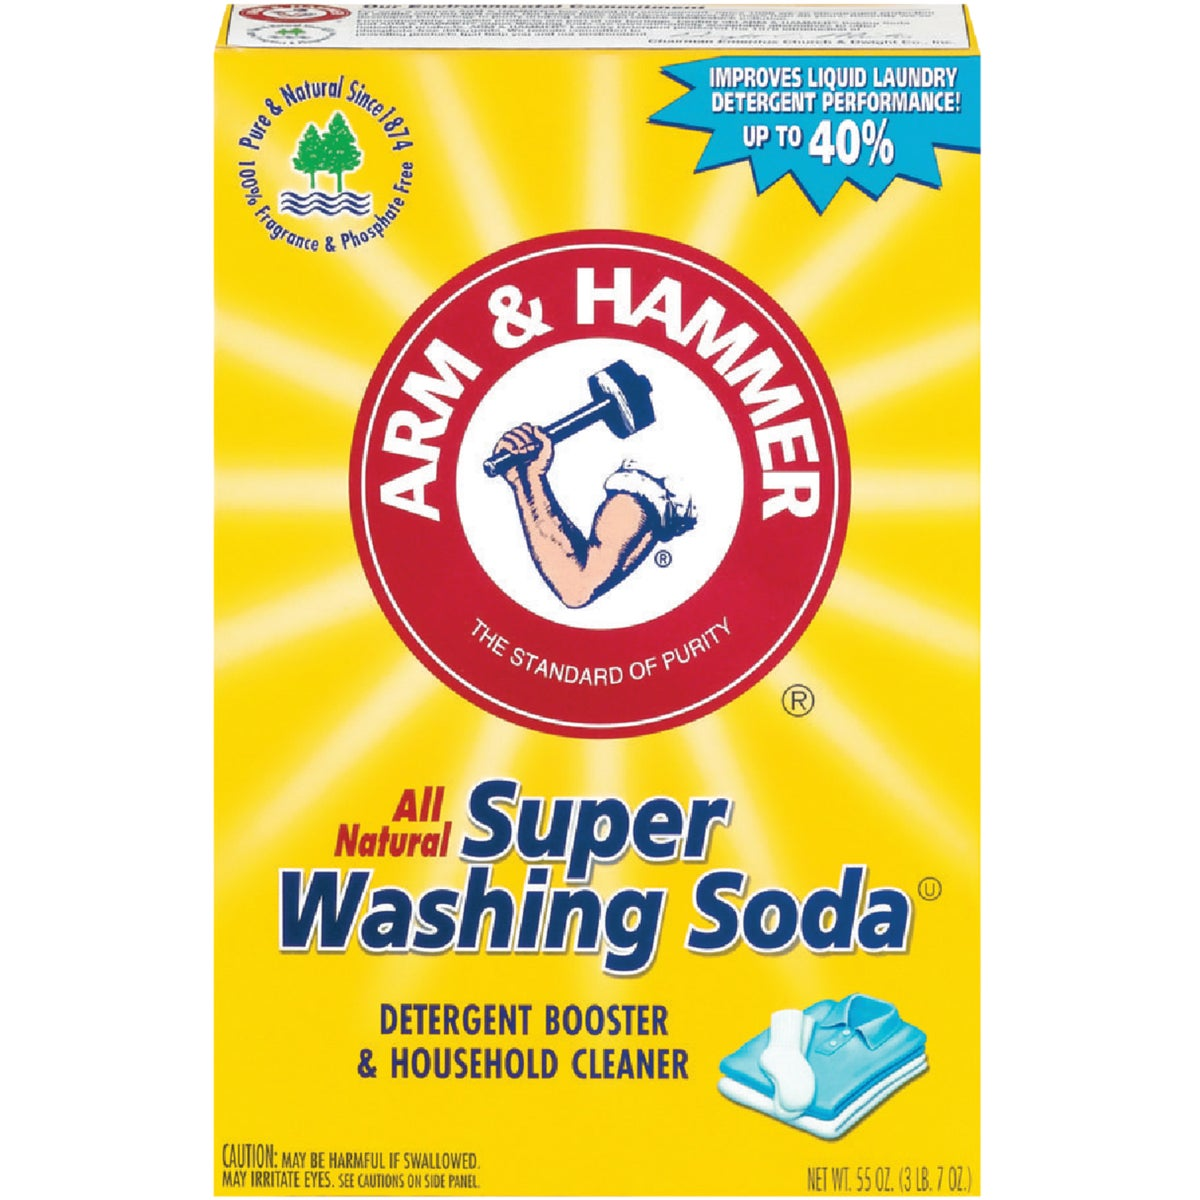 A&H SUPER WASHING SODA - 03020 by Church & Dwight Co